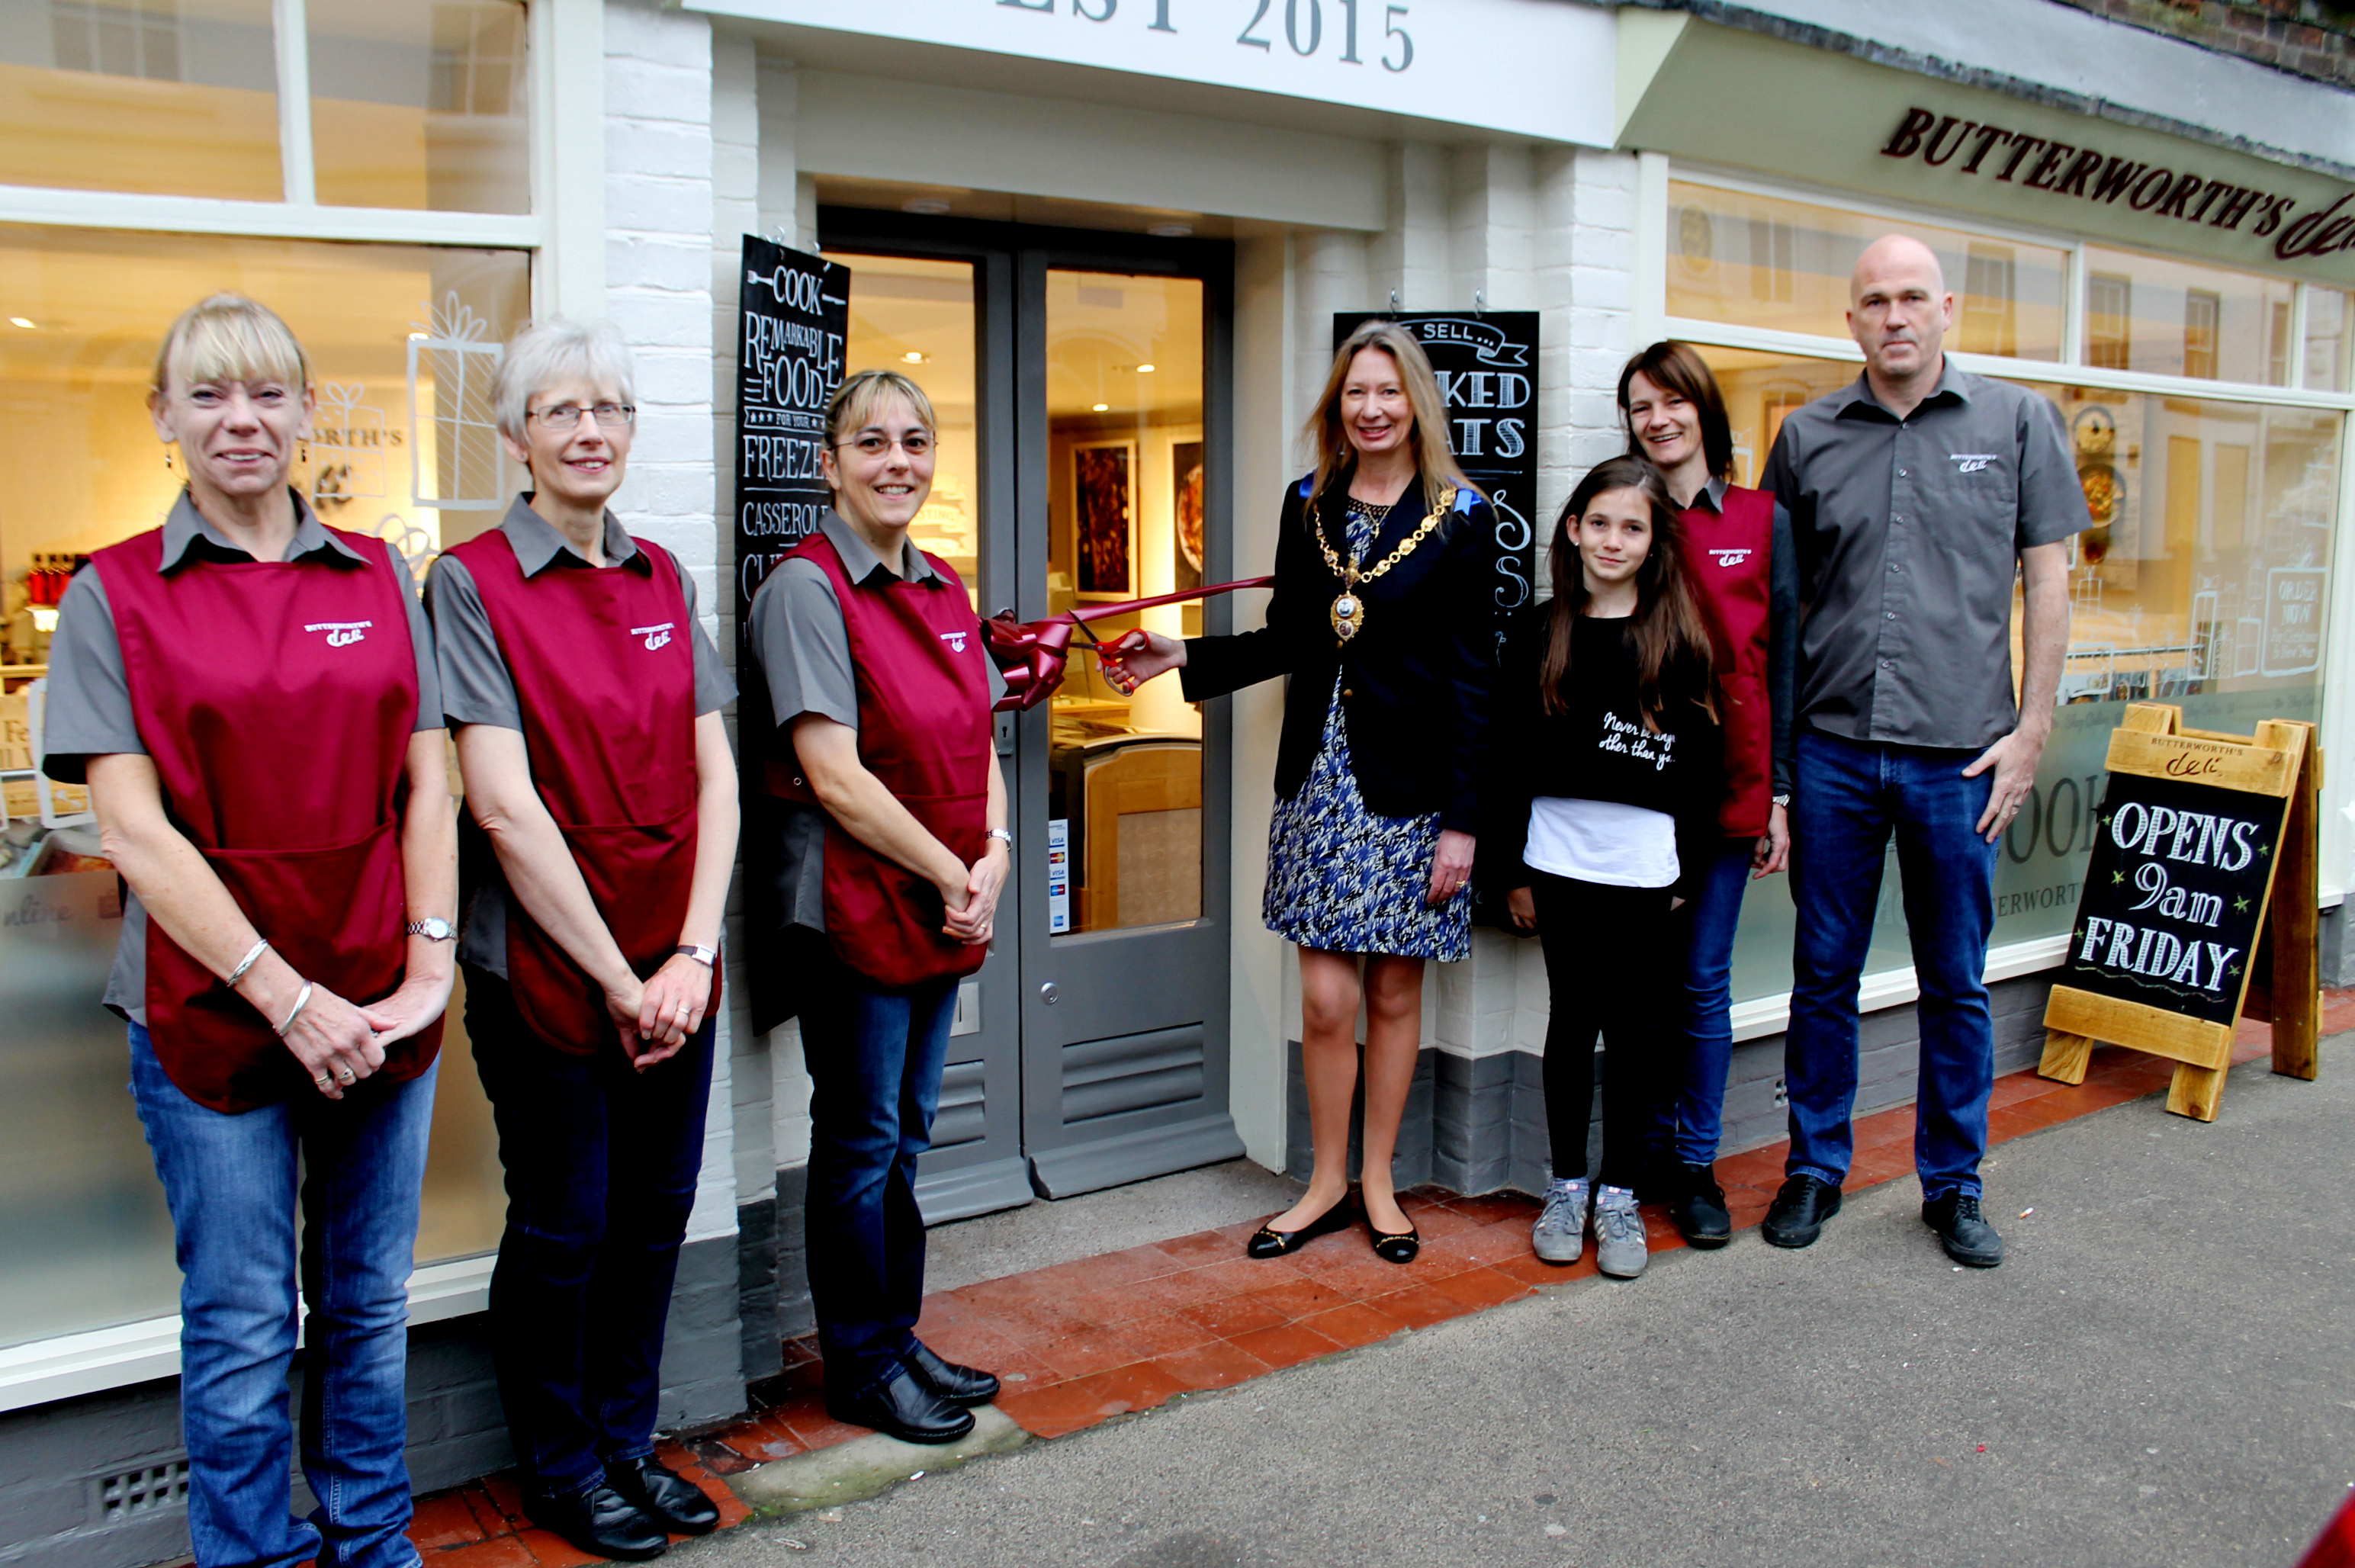 Butterworth's Deli opens for Business